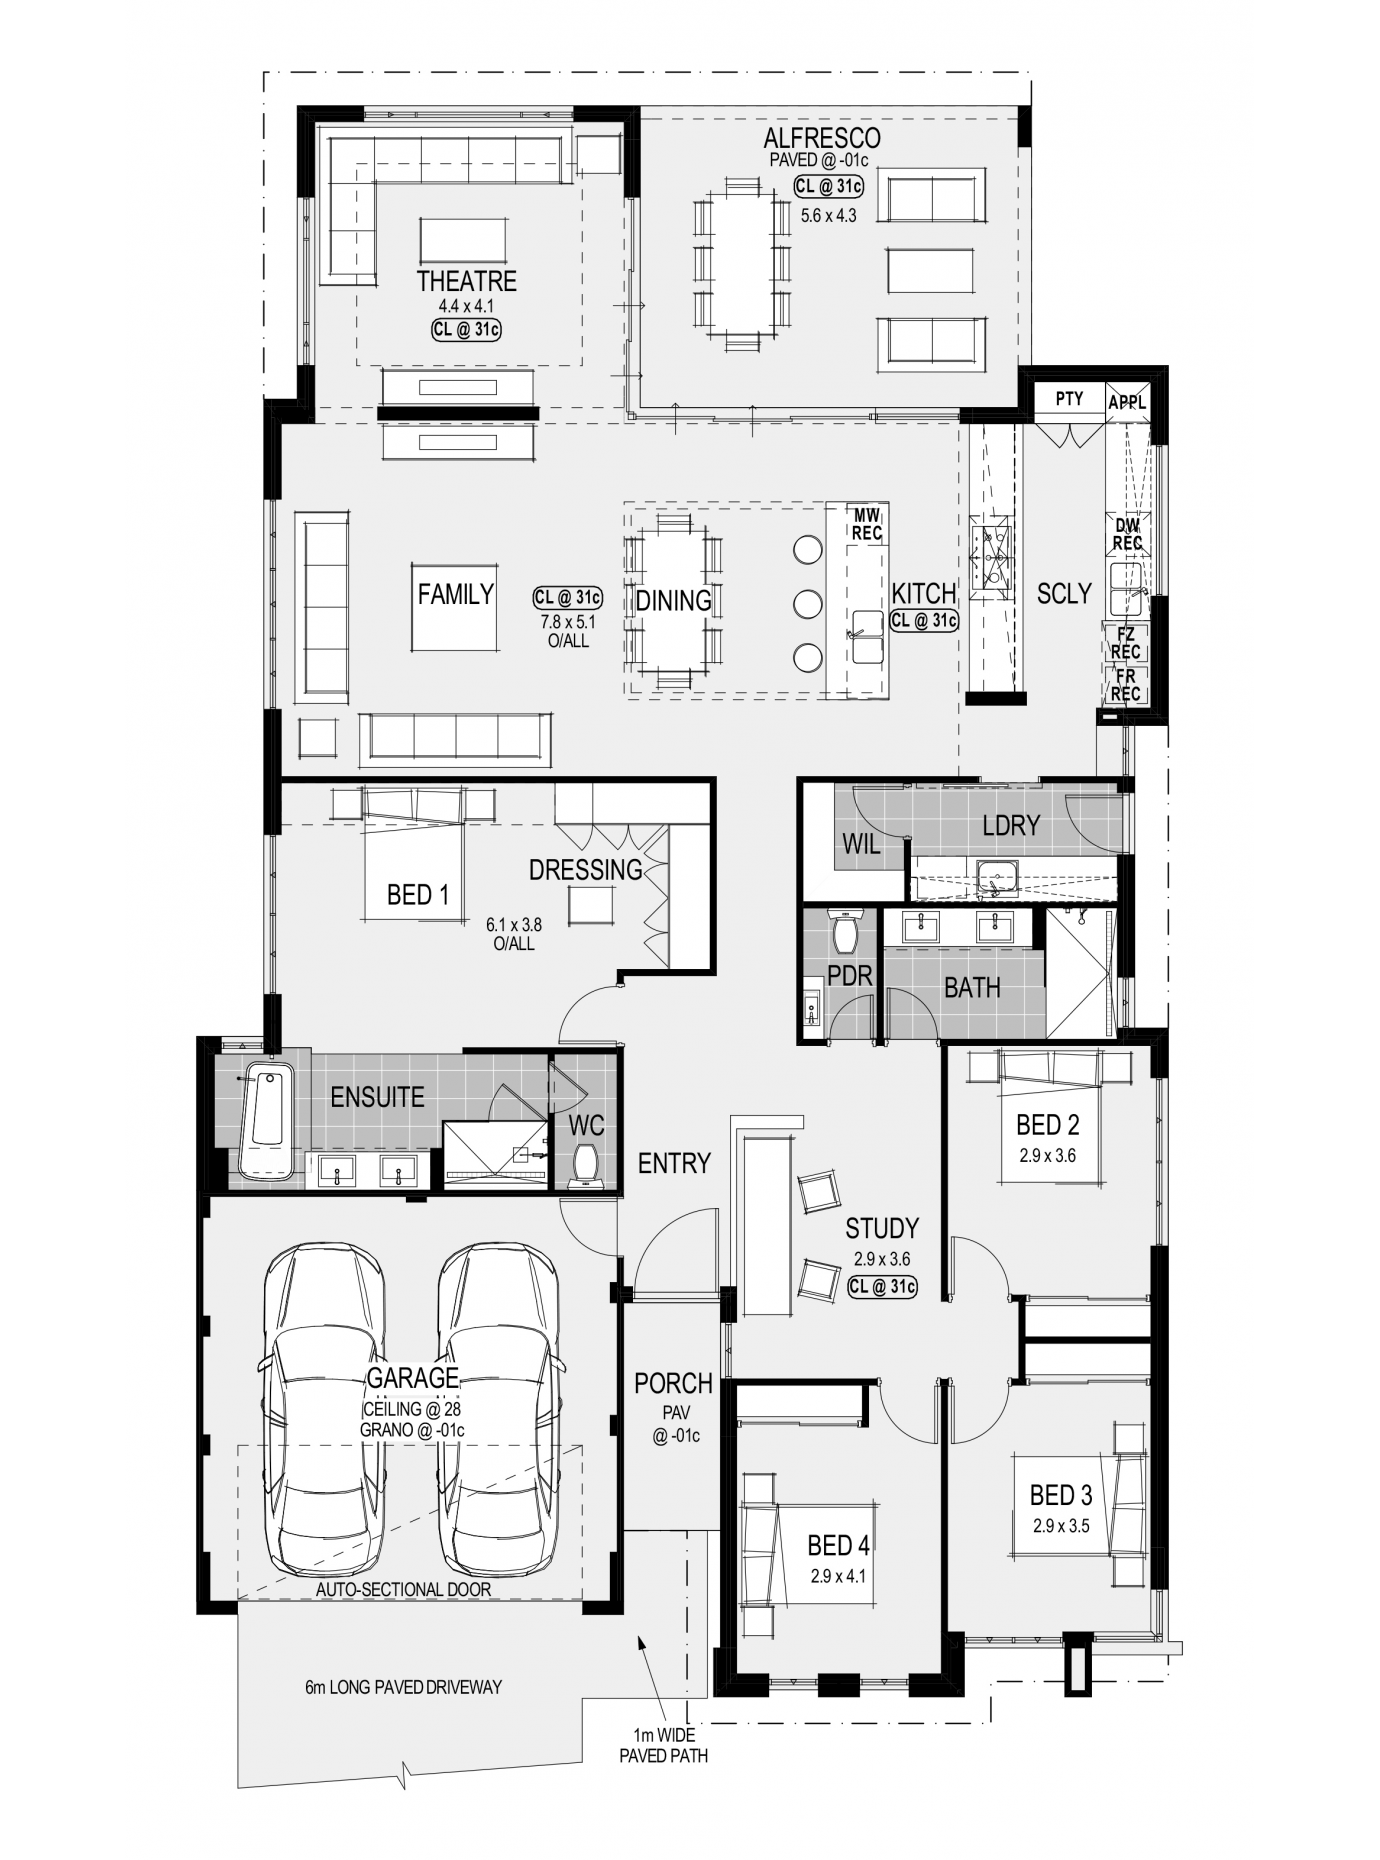 View And Compare Perth Western Australia Display Homes On The One Easy To Use Site From Beach House Floor Plans House Plans Australia Home Design Floor Plans